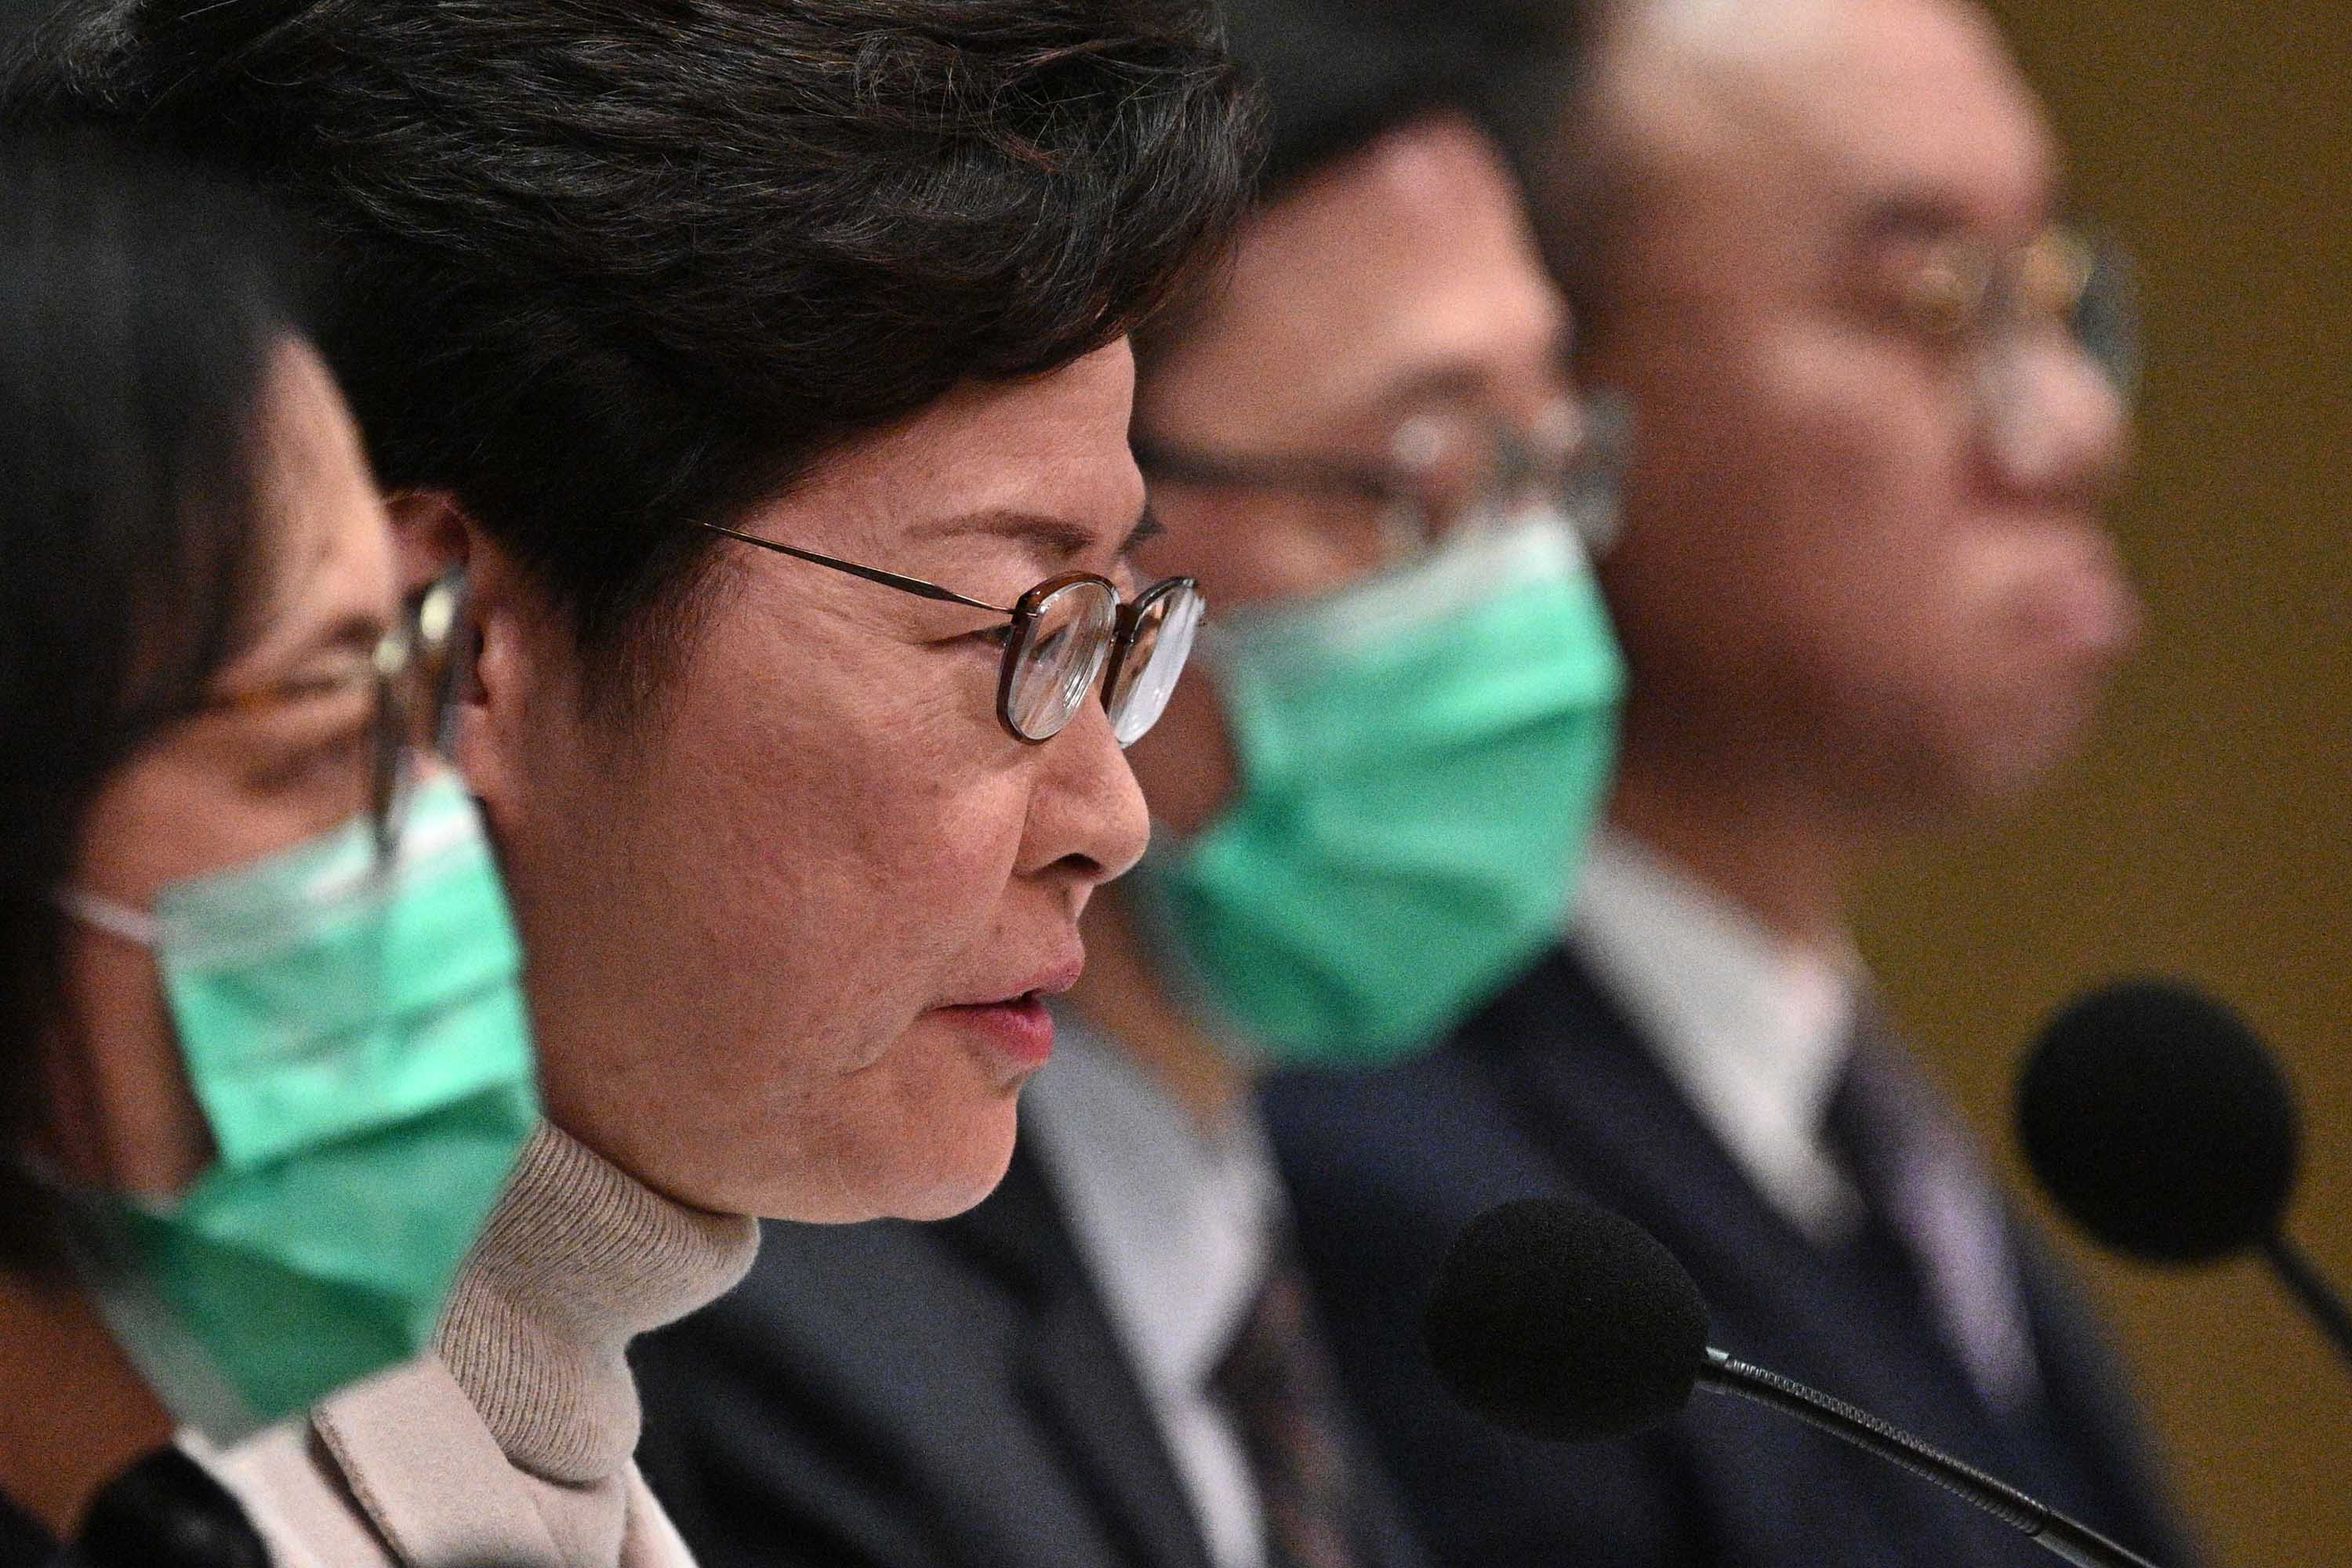 Hong Kong's Chief Executive Carrie Lam speaks during a press conference in Hong Kong on February 3.